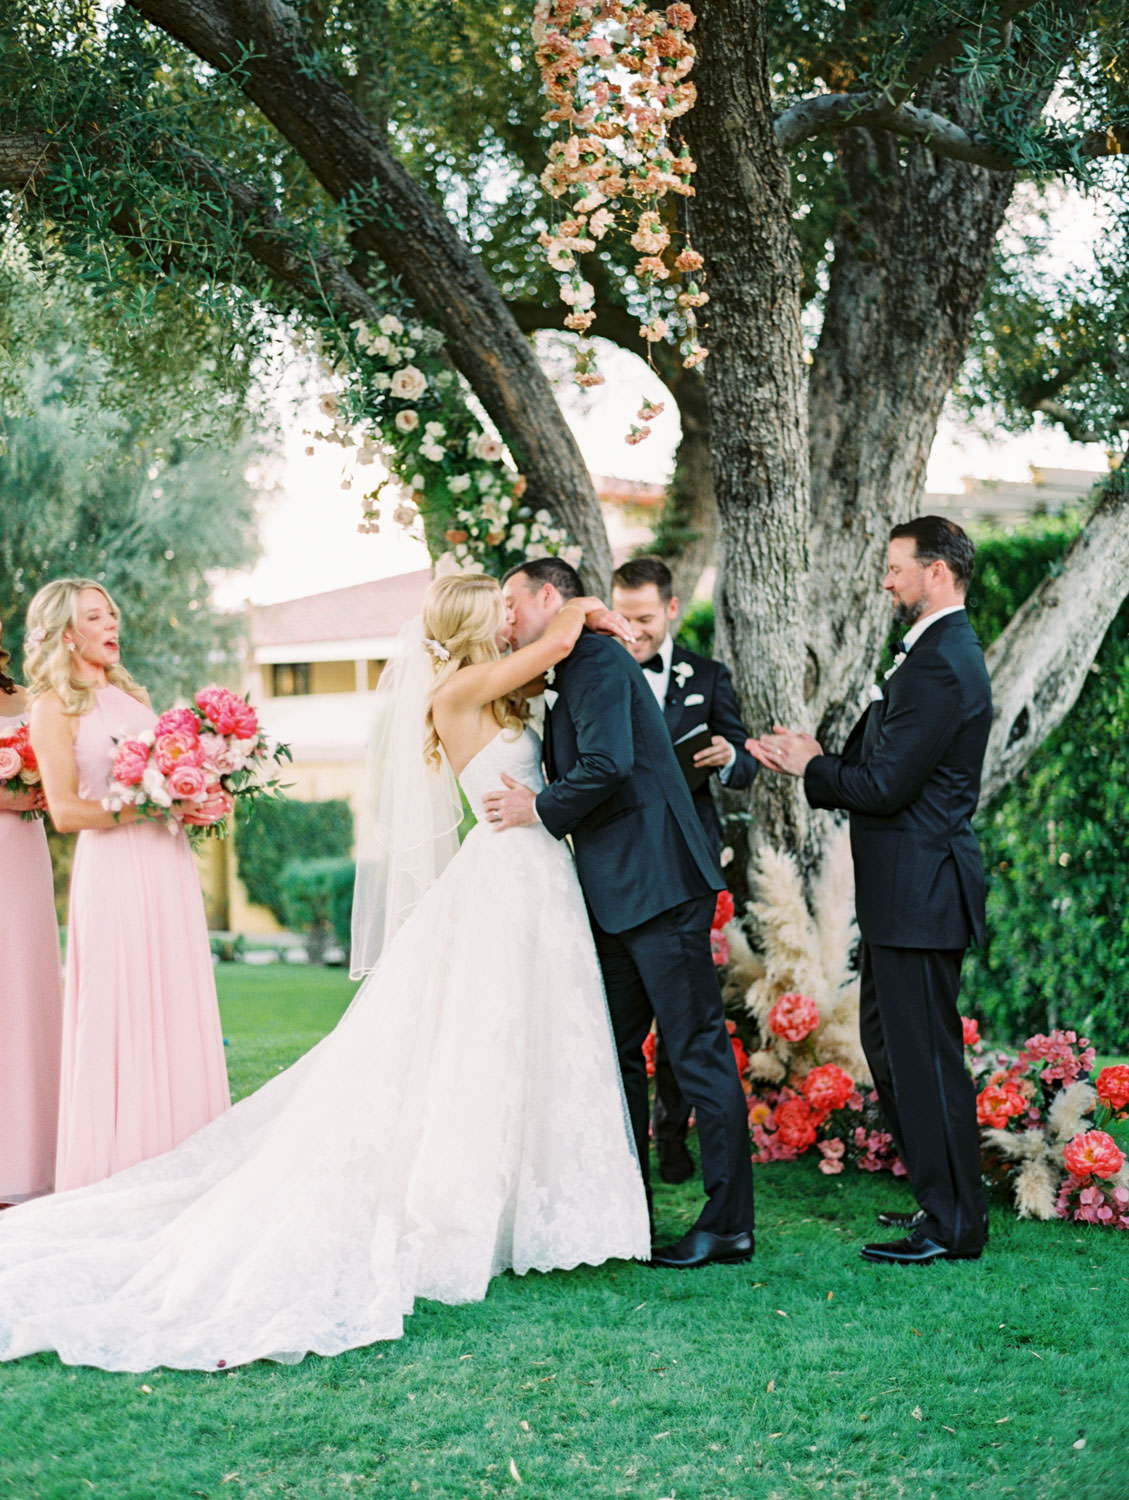 Bride and groom first kiss. Large tree with hanging floral arrangements and pink peonies and pampas grass spiraling up the trunk. Miramonte Resort ceremony on Miramonte Green. Film photography by Cavin Elizabeth.